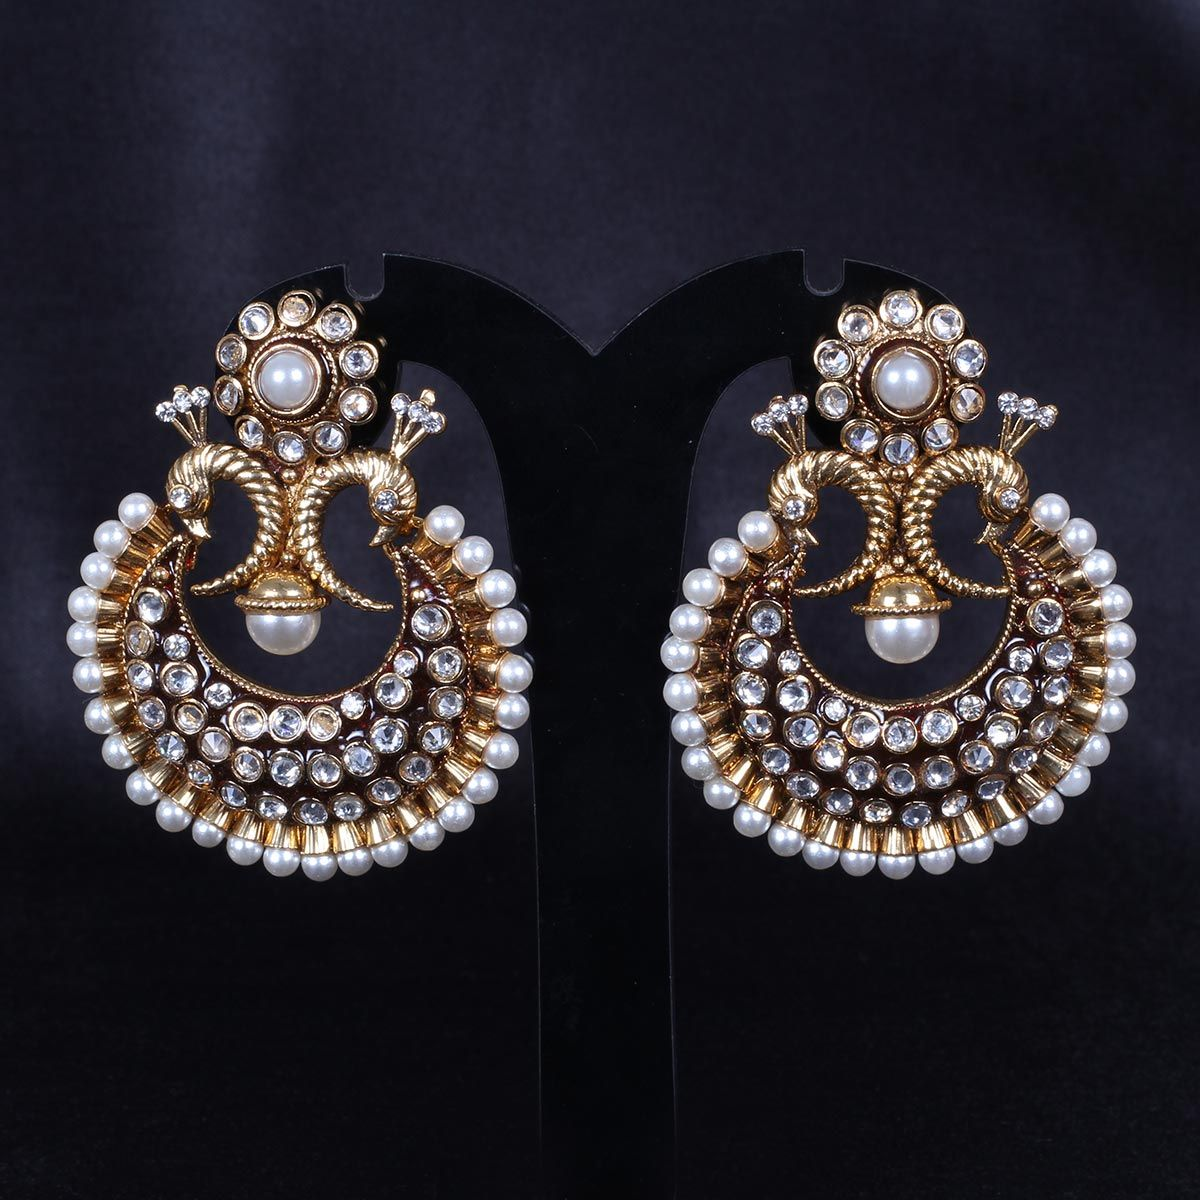 8526216785f4 Chand Bali Peacock design with kundan stones and Pearls - WJ0206 Bridal  Jewellery Earrings